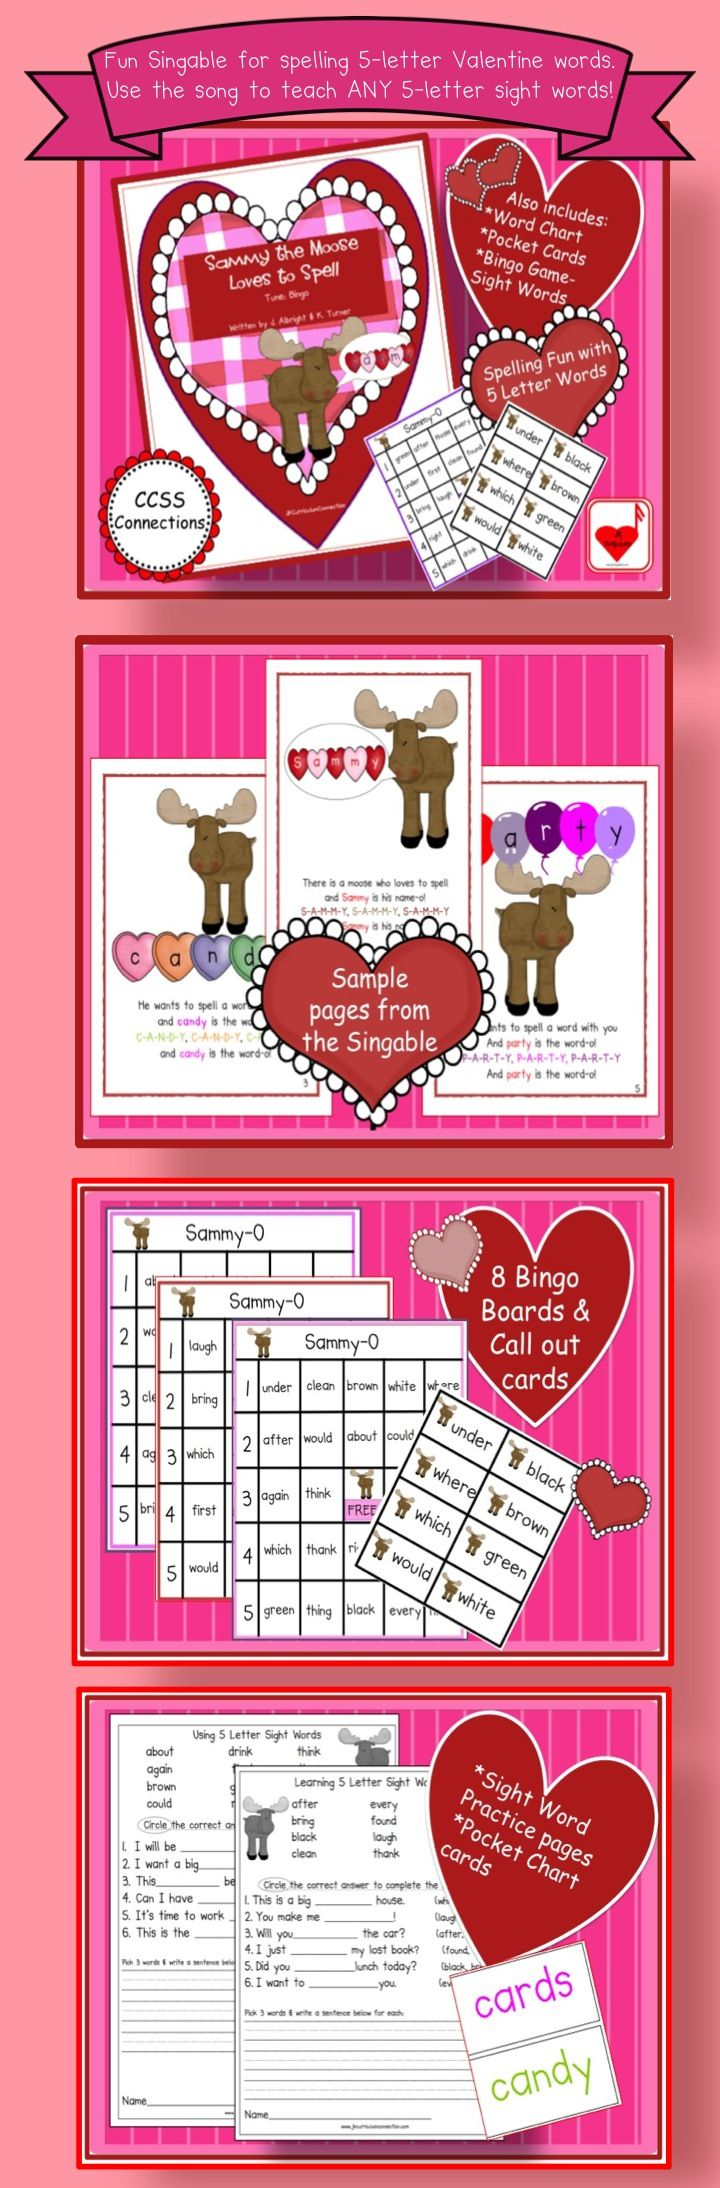 Valentines Day Spelling Song Sammy the Moose Loves to SPELL